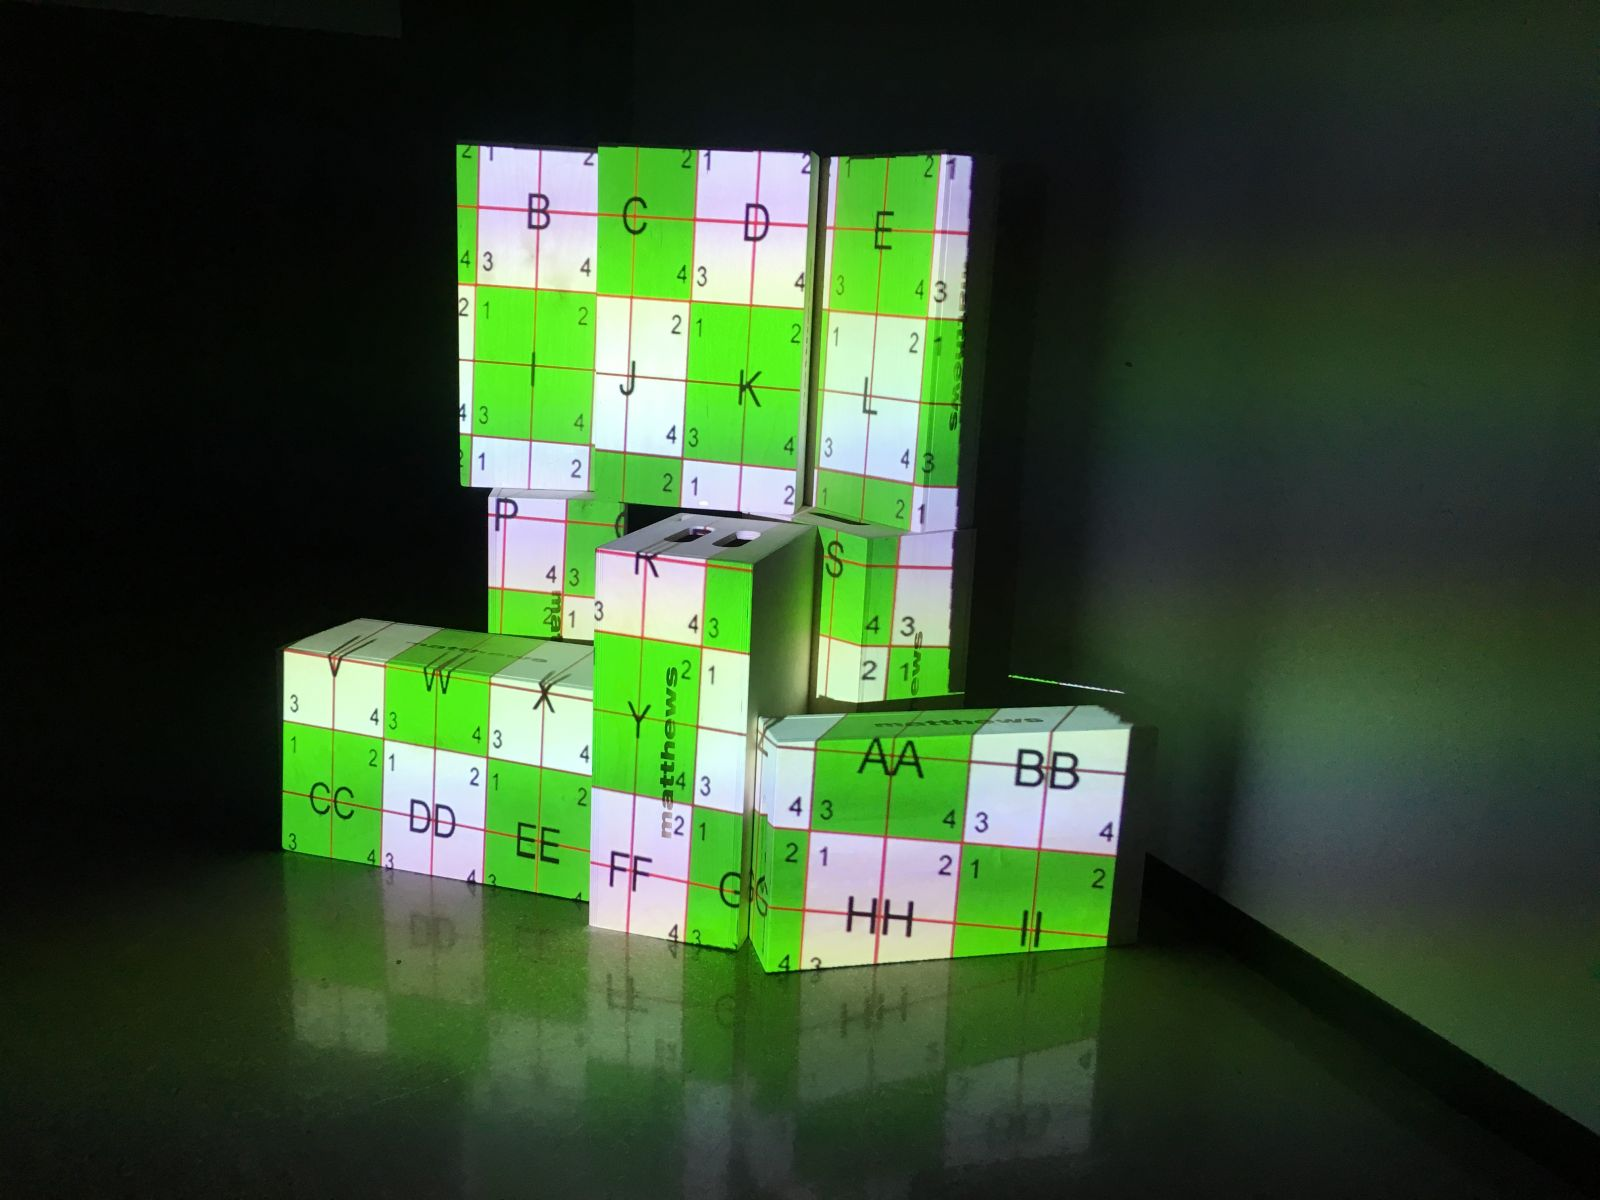 Projection of letters onto blocks